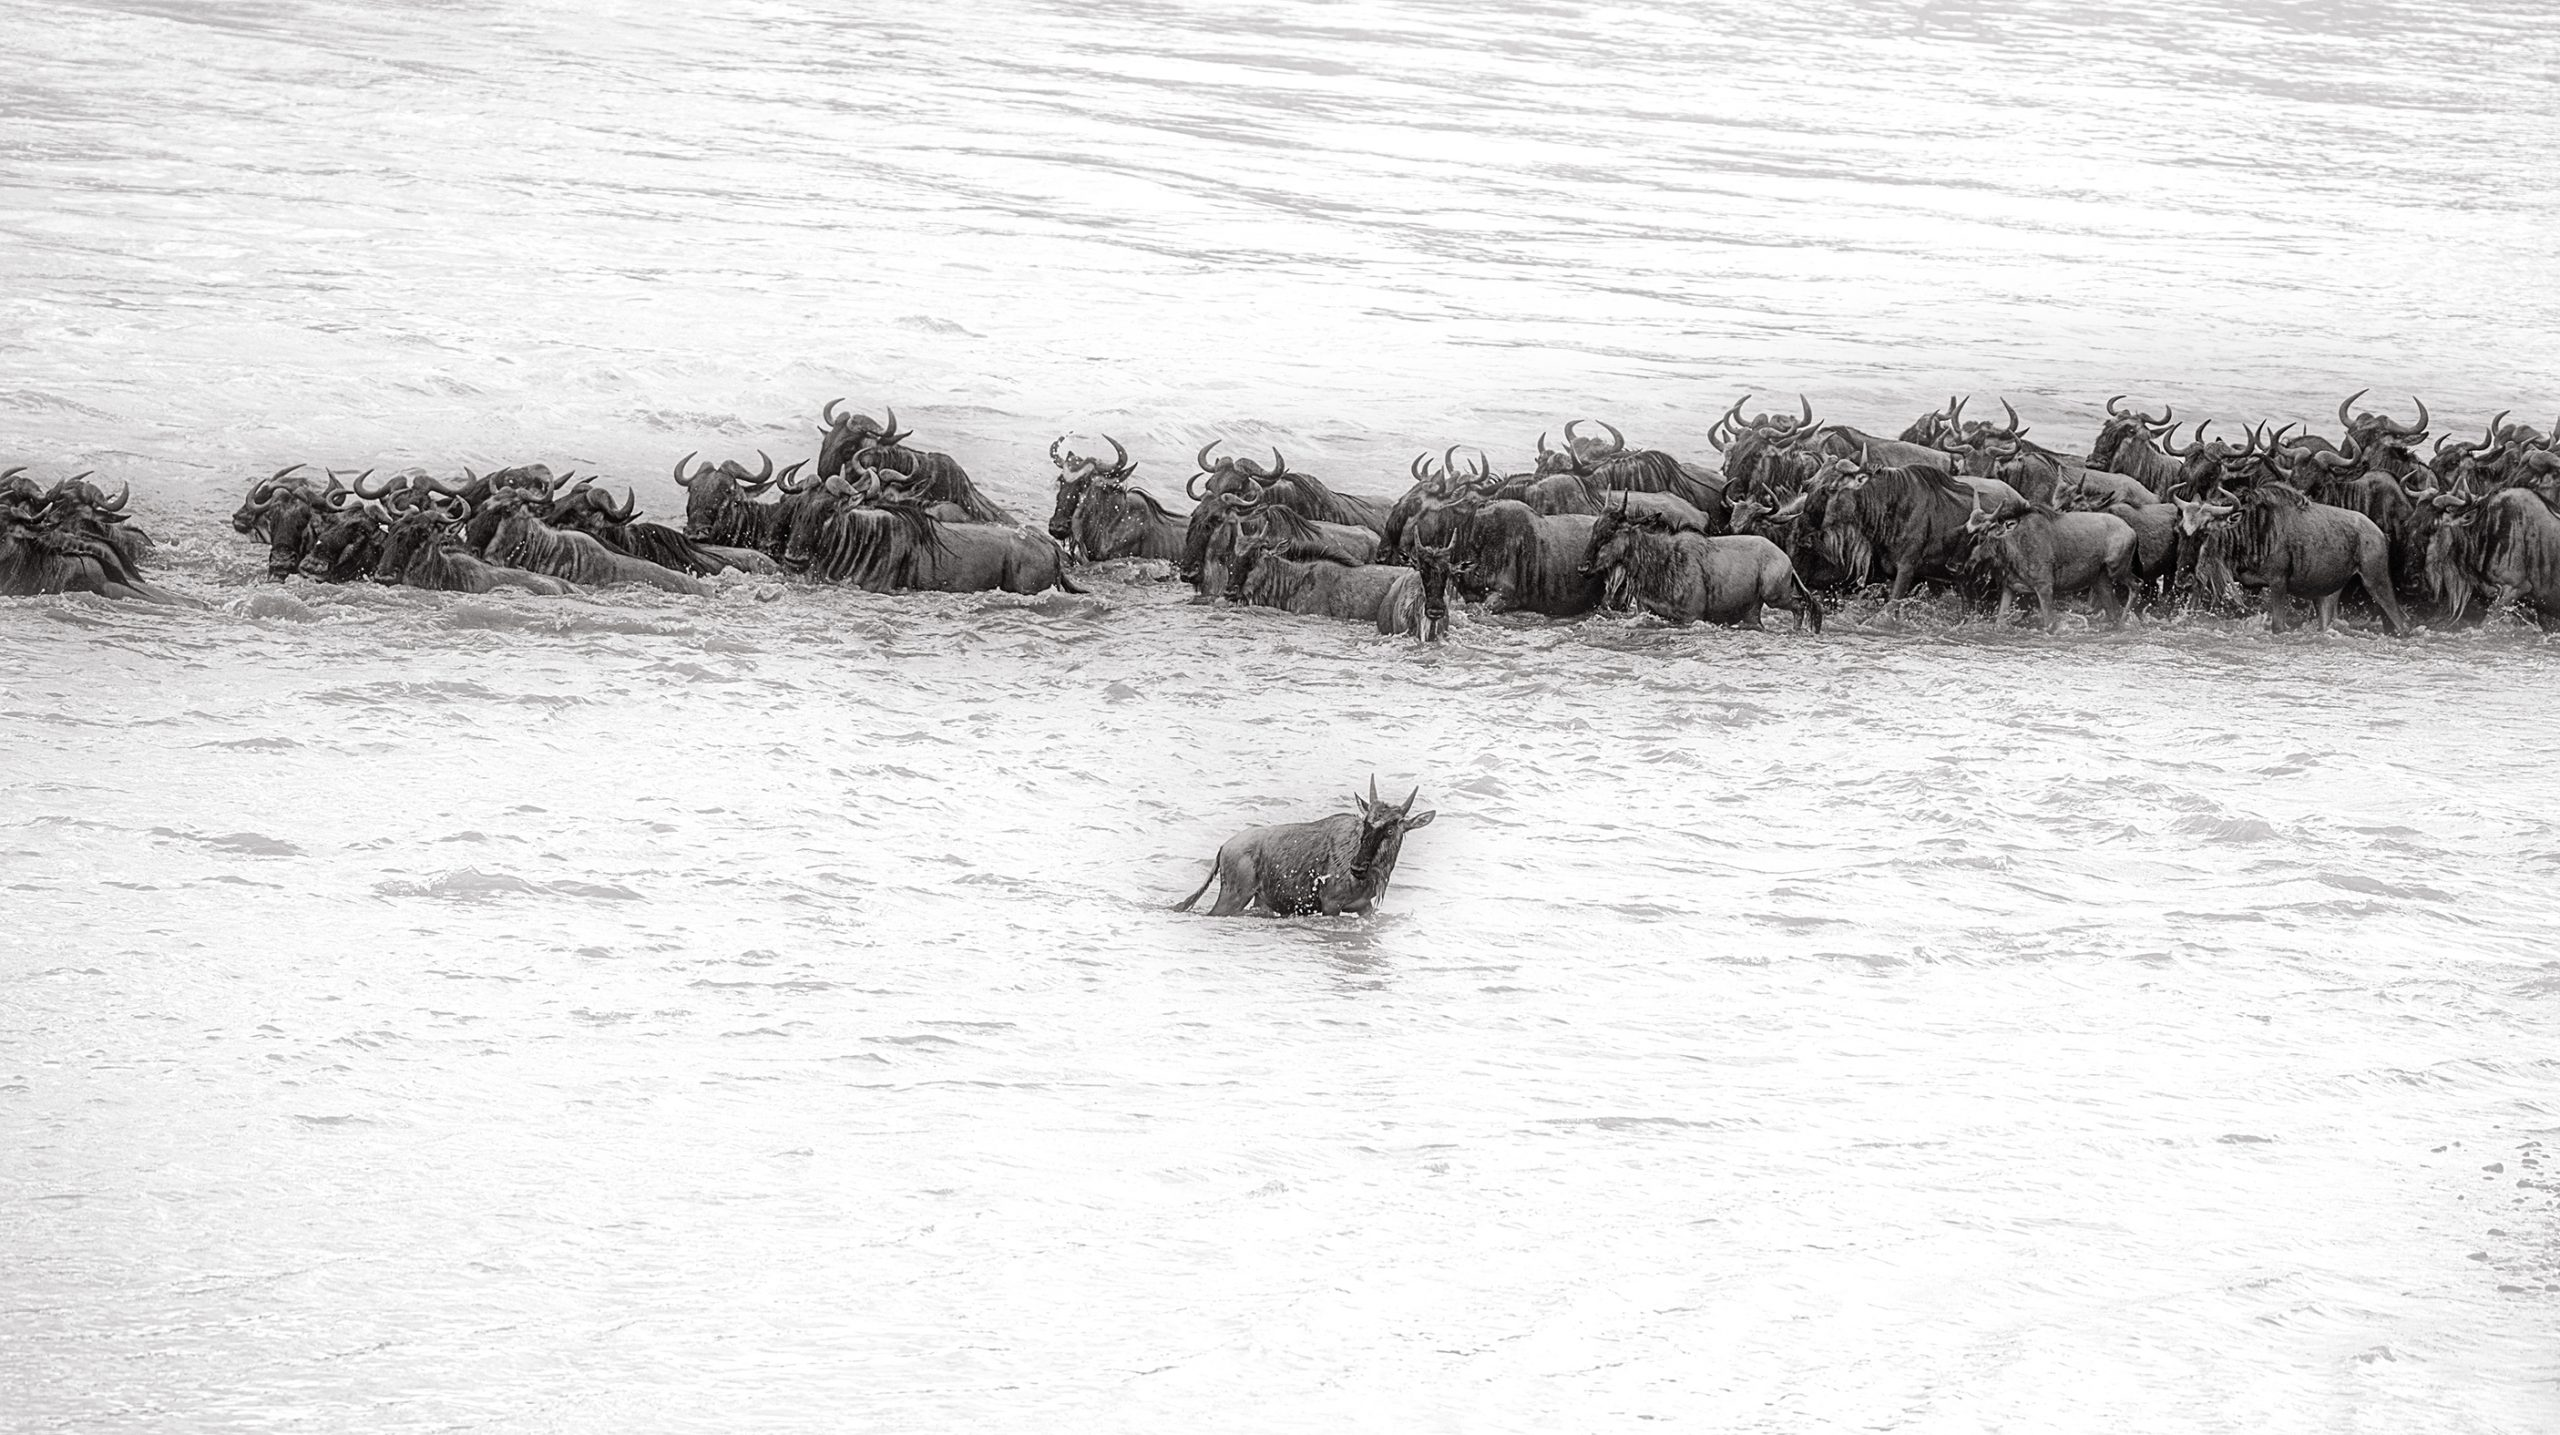 Wildebeest goes opposite side of the rest of the herd in Mara Rivers crossing